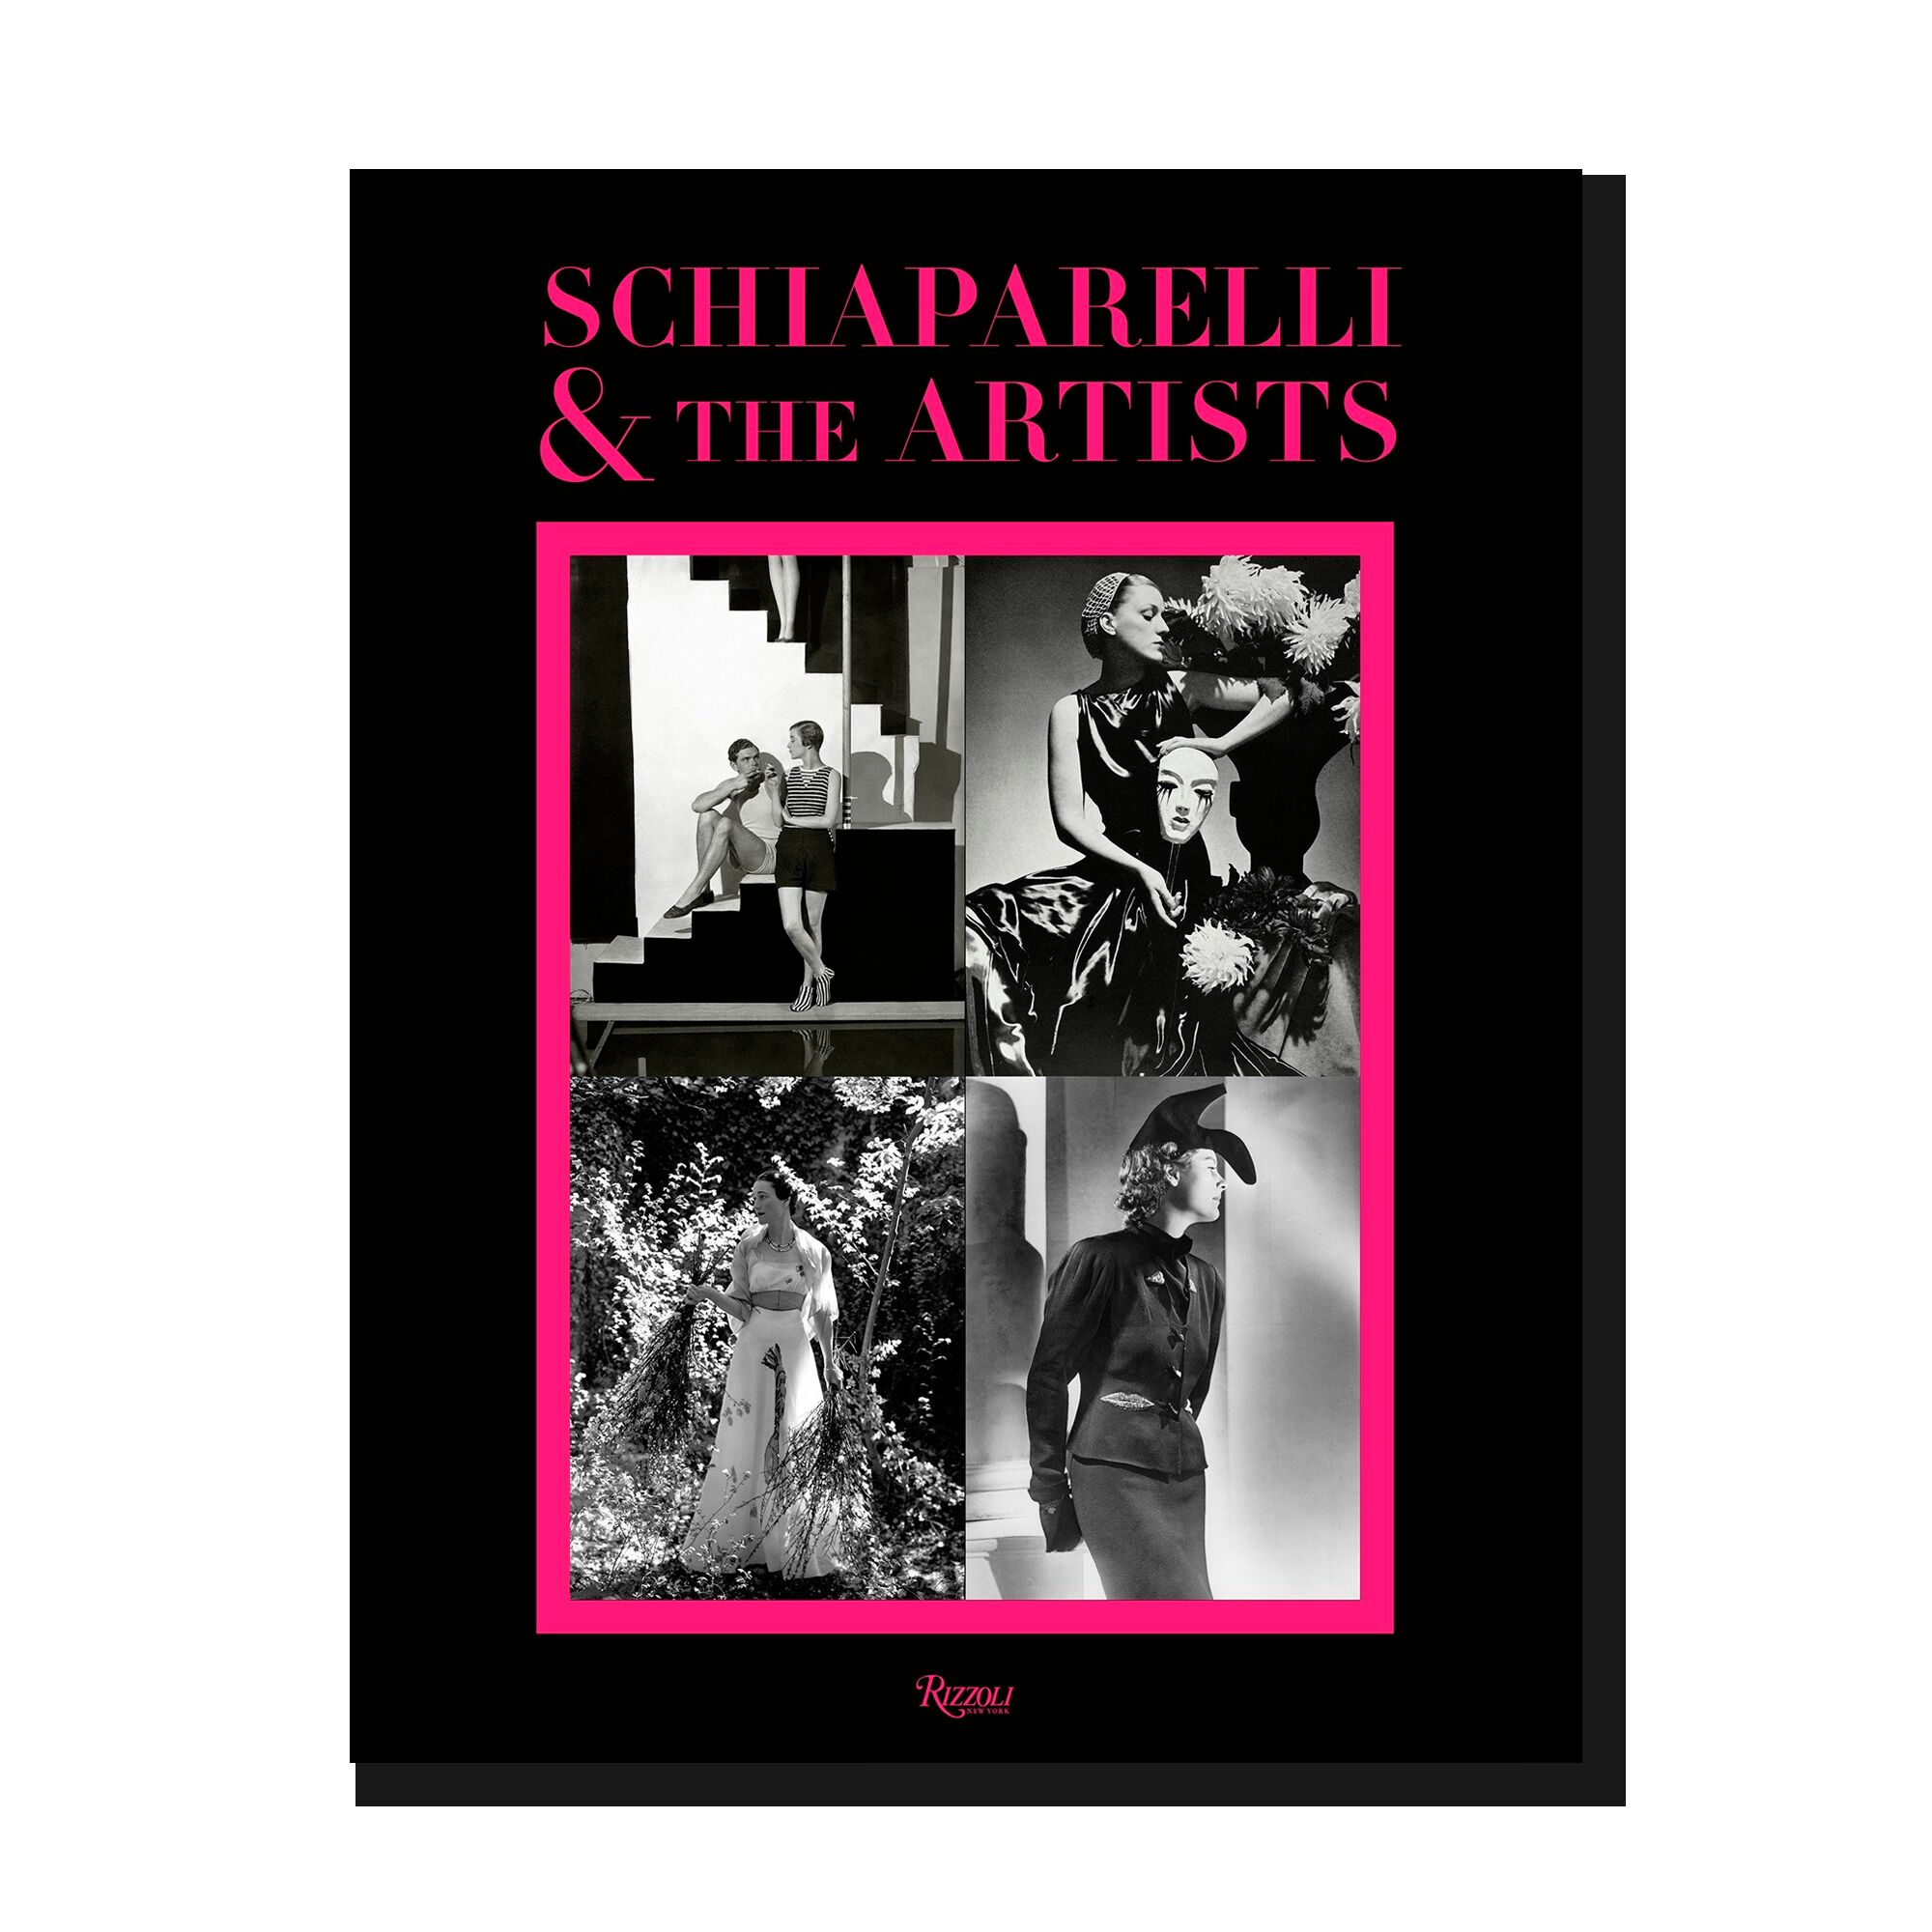 Schiaparelli and the Artists